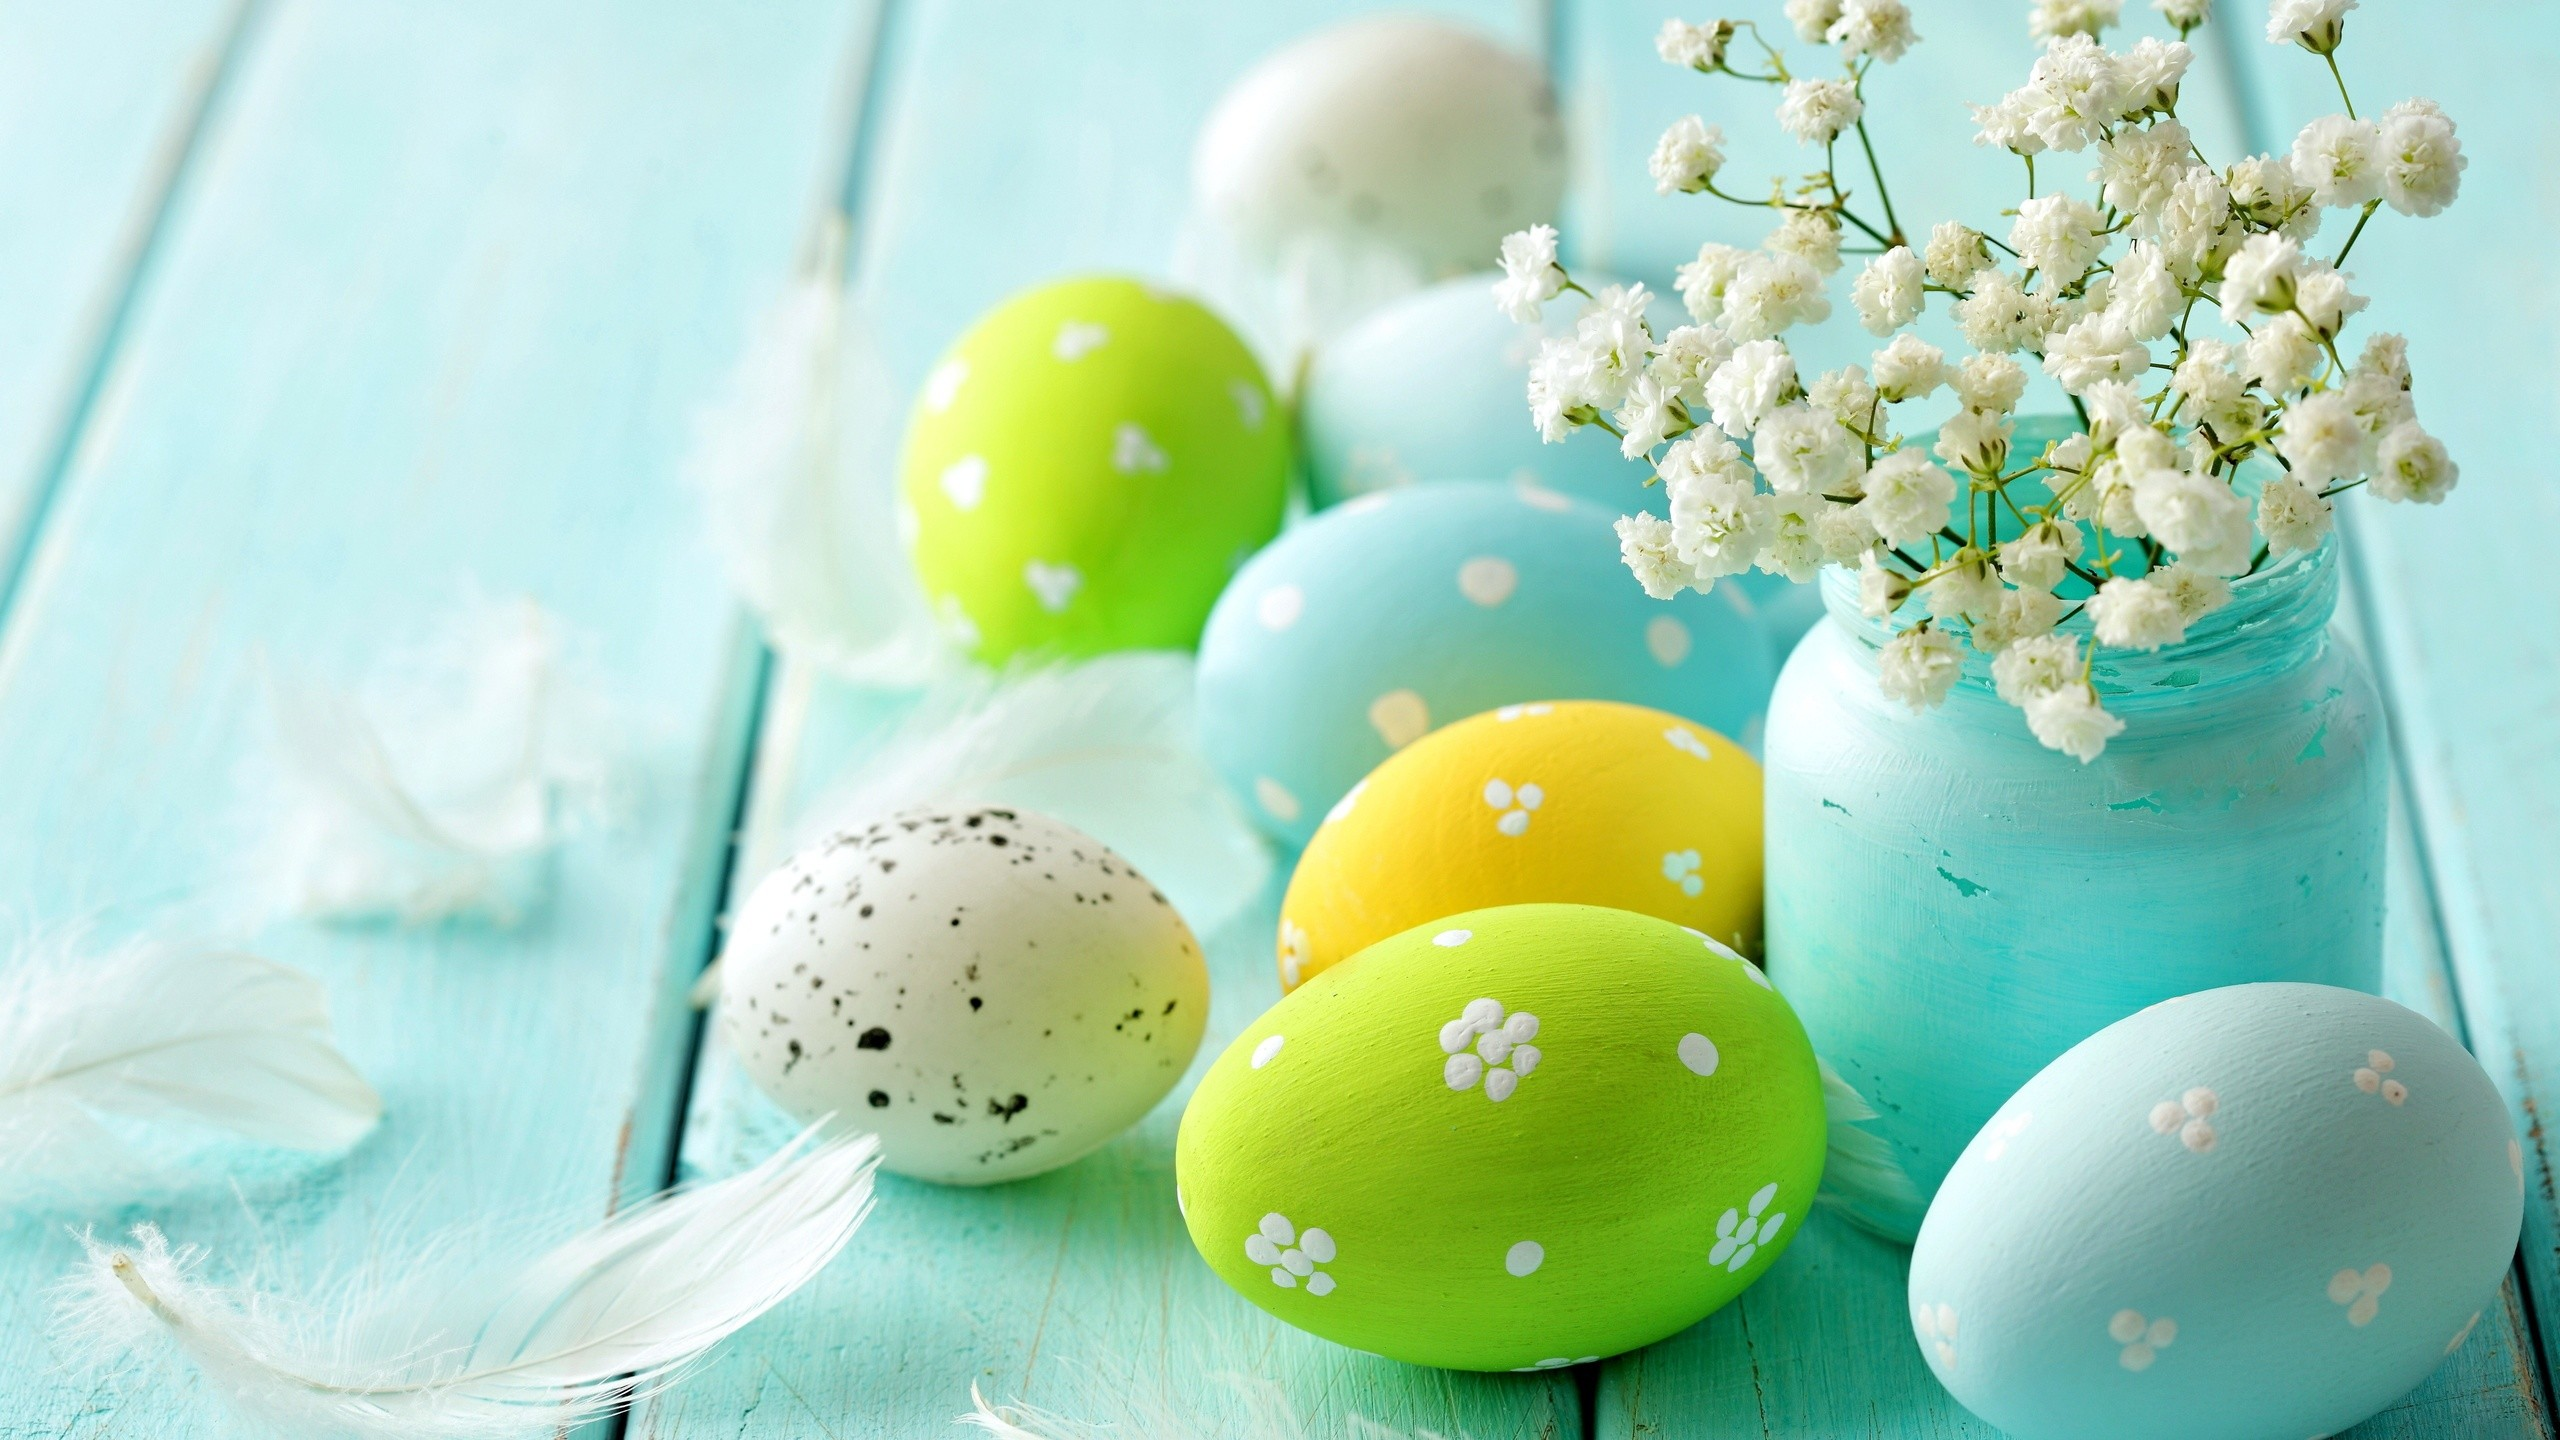 2560x1440 Free Wallpaper Easter Spring - WallpaperSafari Eggs Holiday Spring Easter  wallpaper | 2560x1600 | #26386 ...